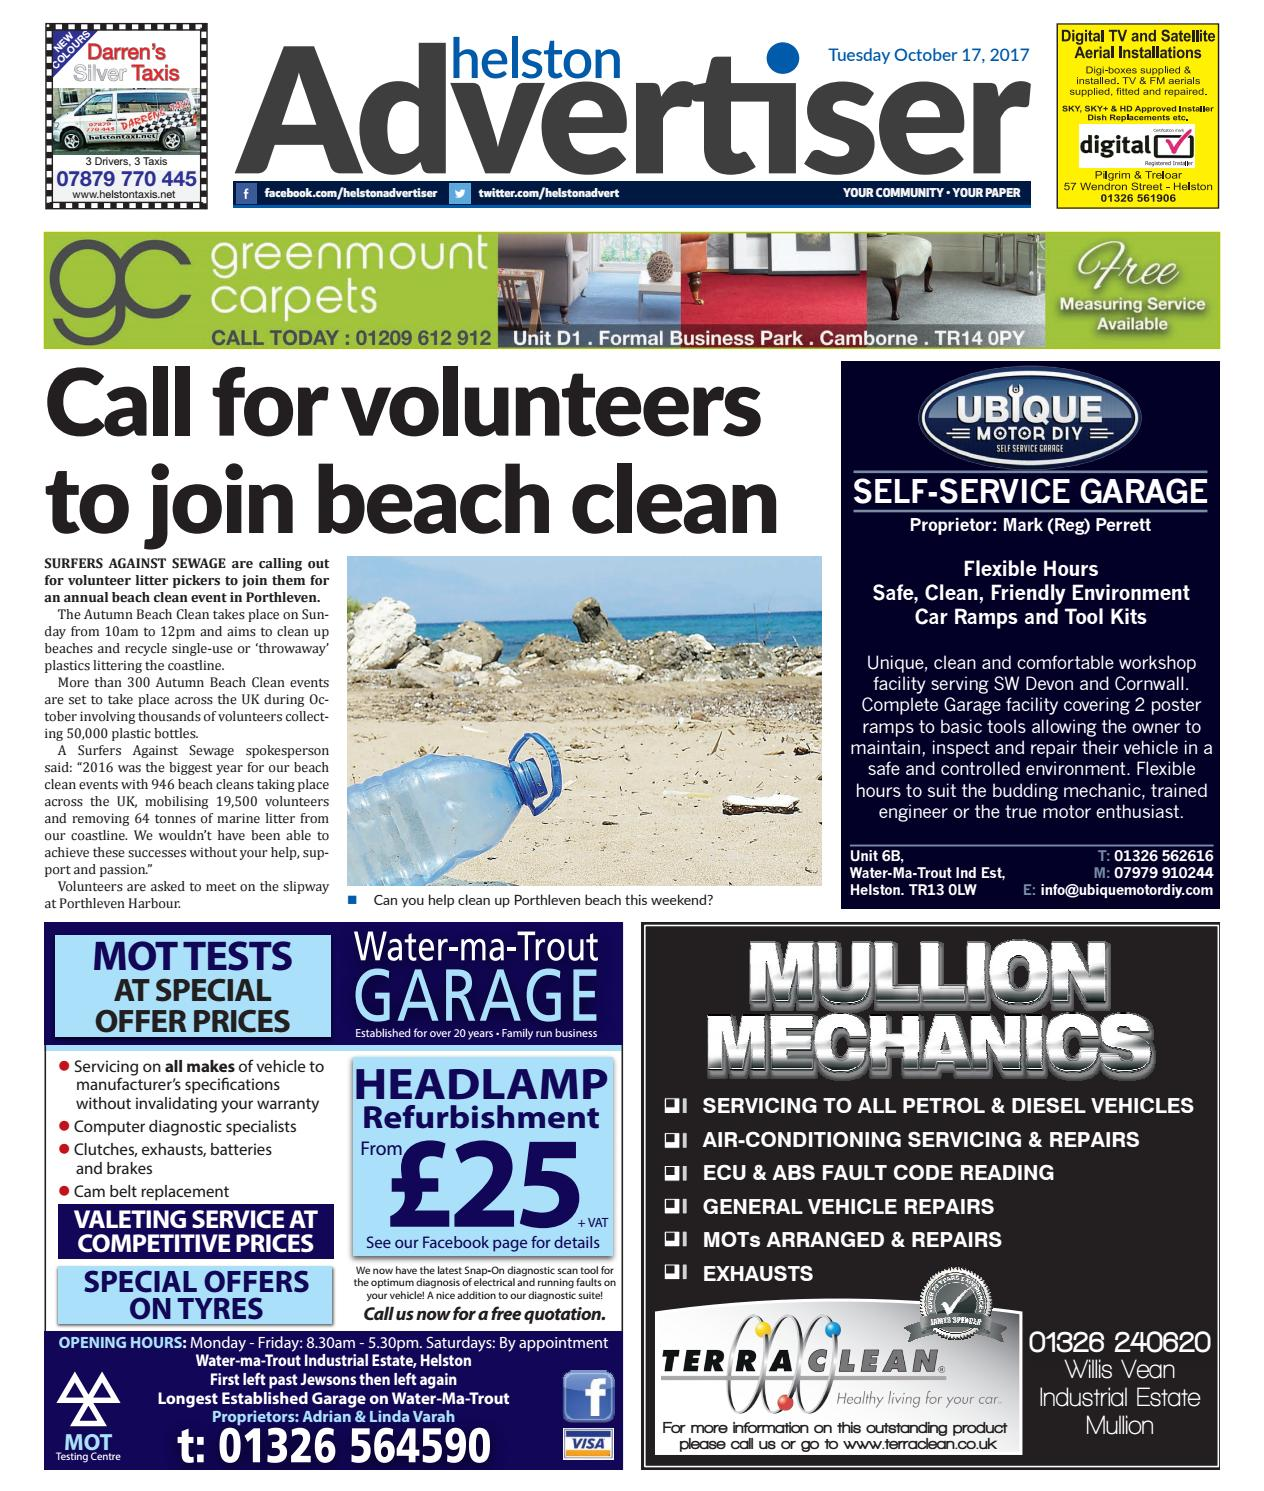 Helston Advertiser - October 17th 2017 by Helston Advertiser